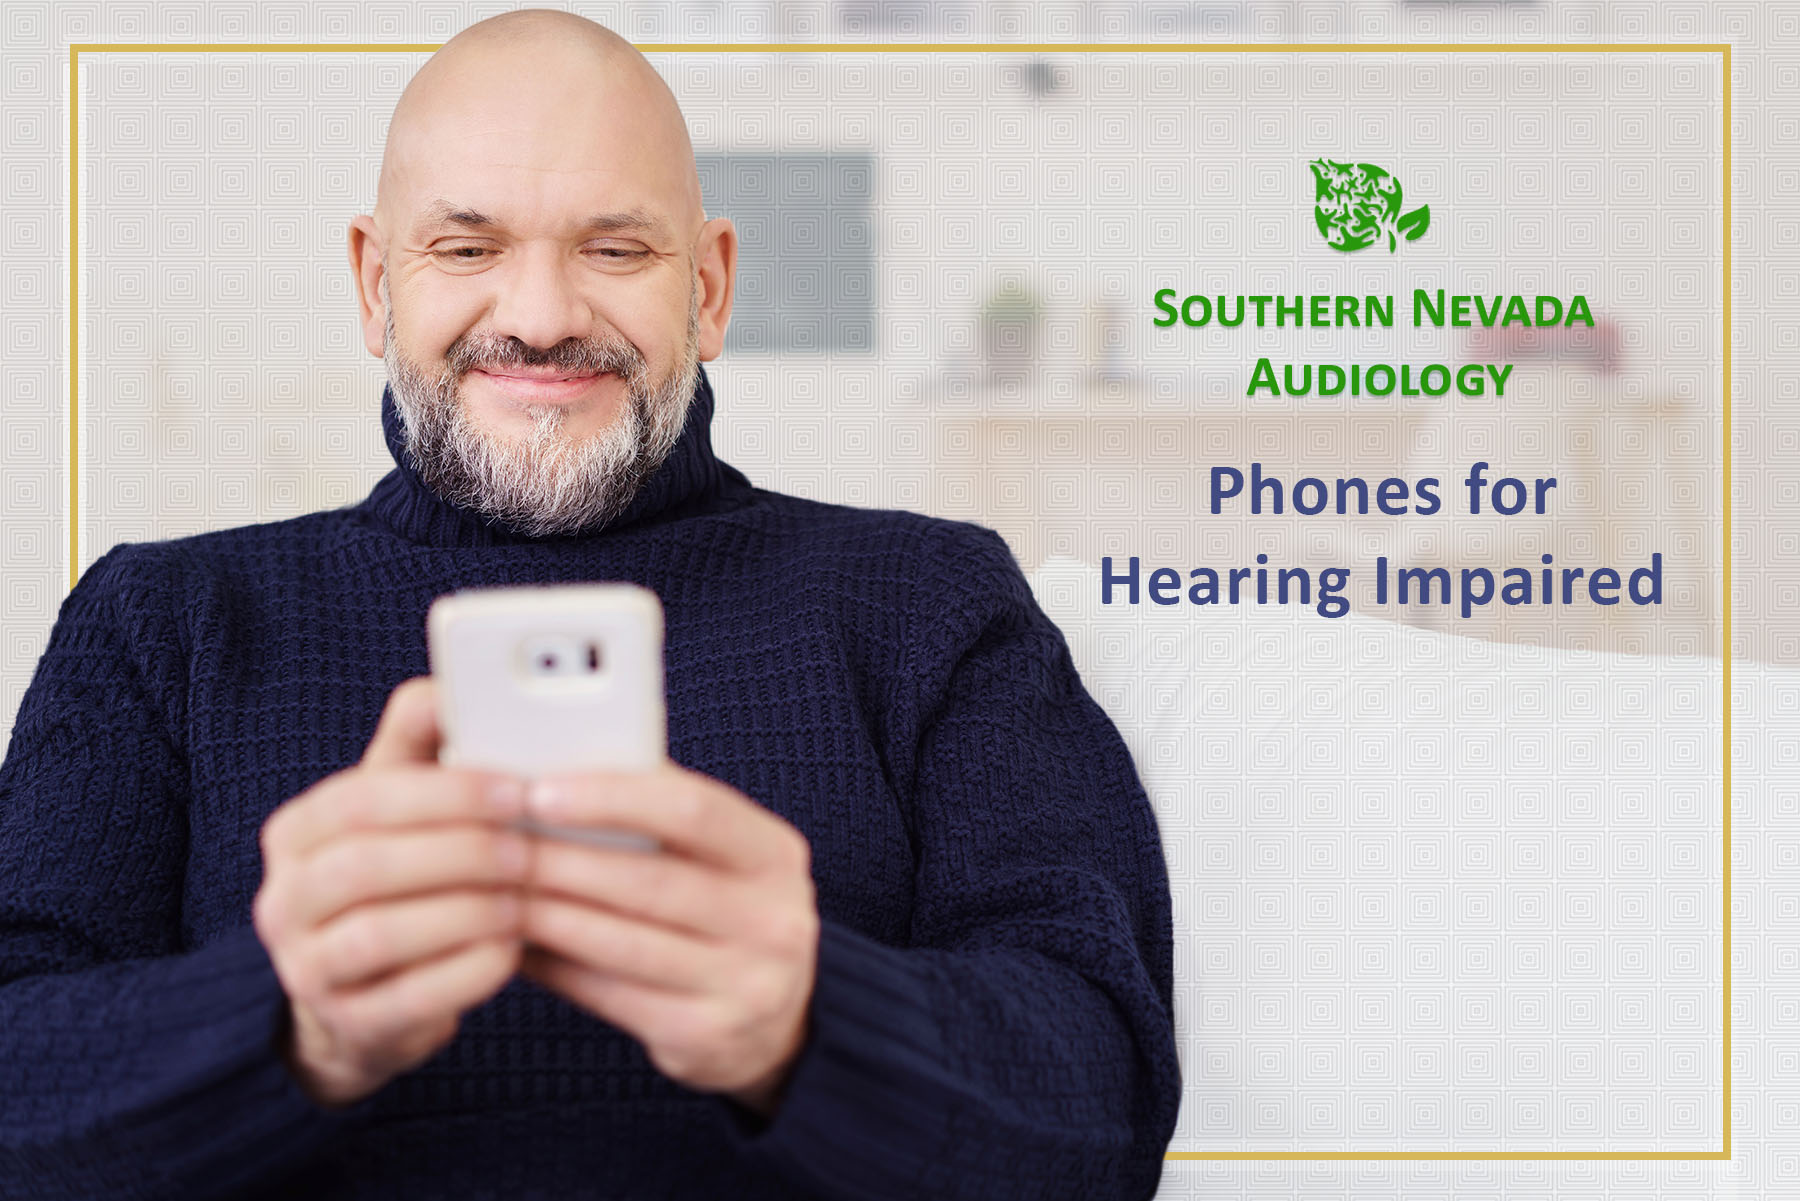 Phones for Hearing Impaired